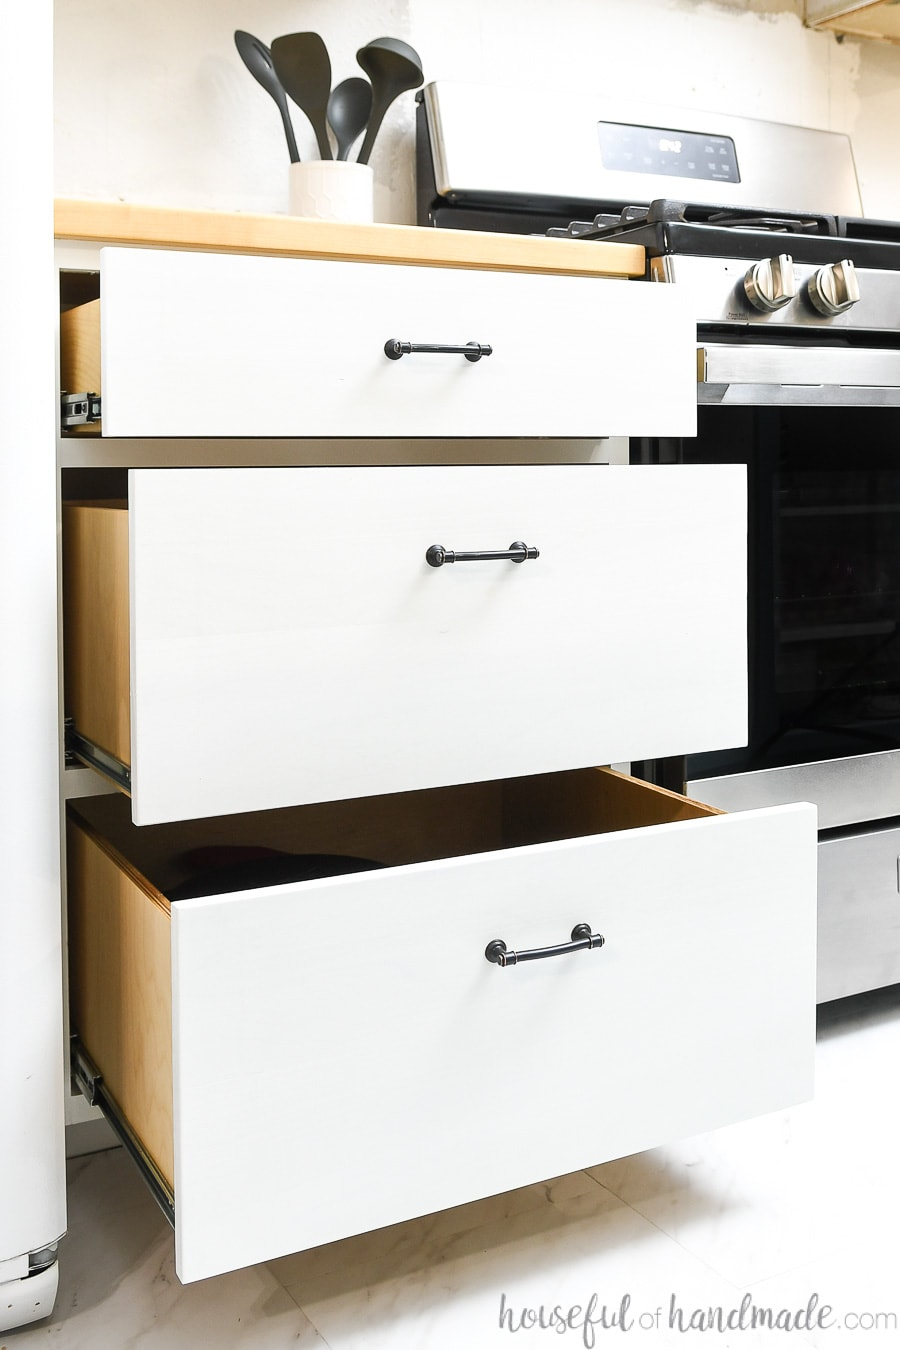 Three white kitchen cabinet drawers with black pulls pulled out partially showing the ball bearing drawer slides on the sides of the drawers.